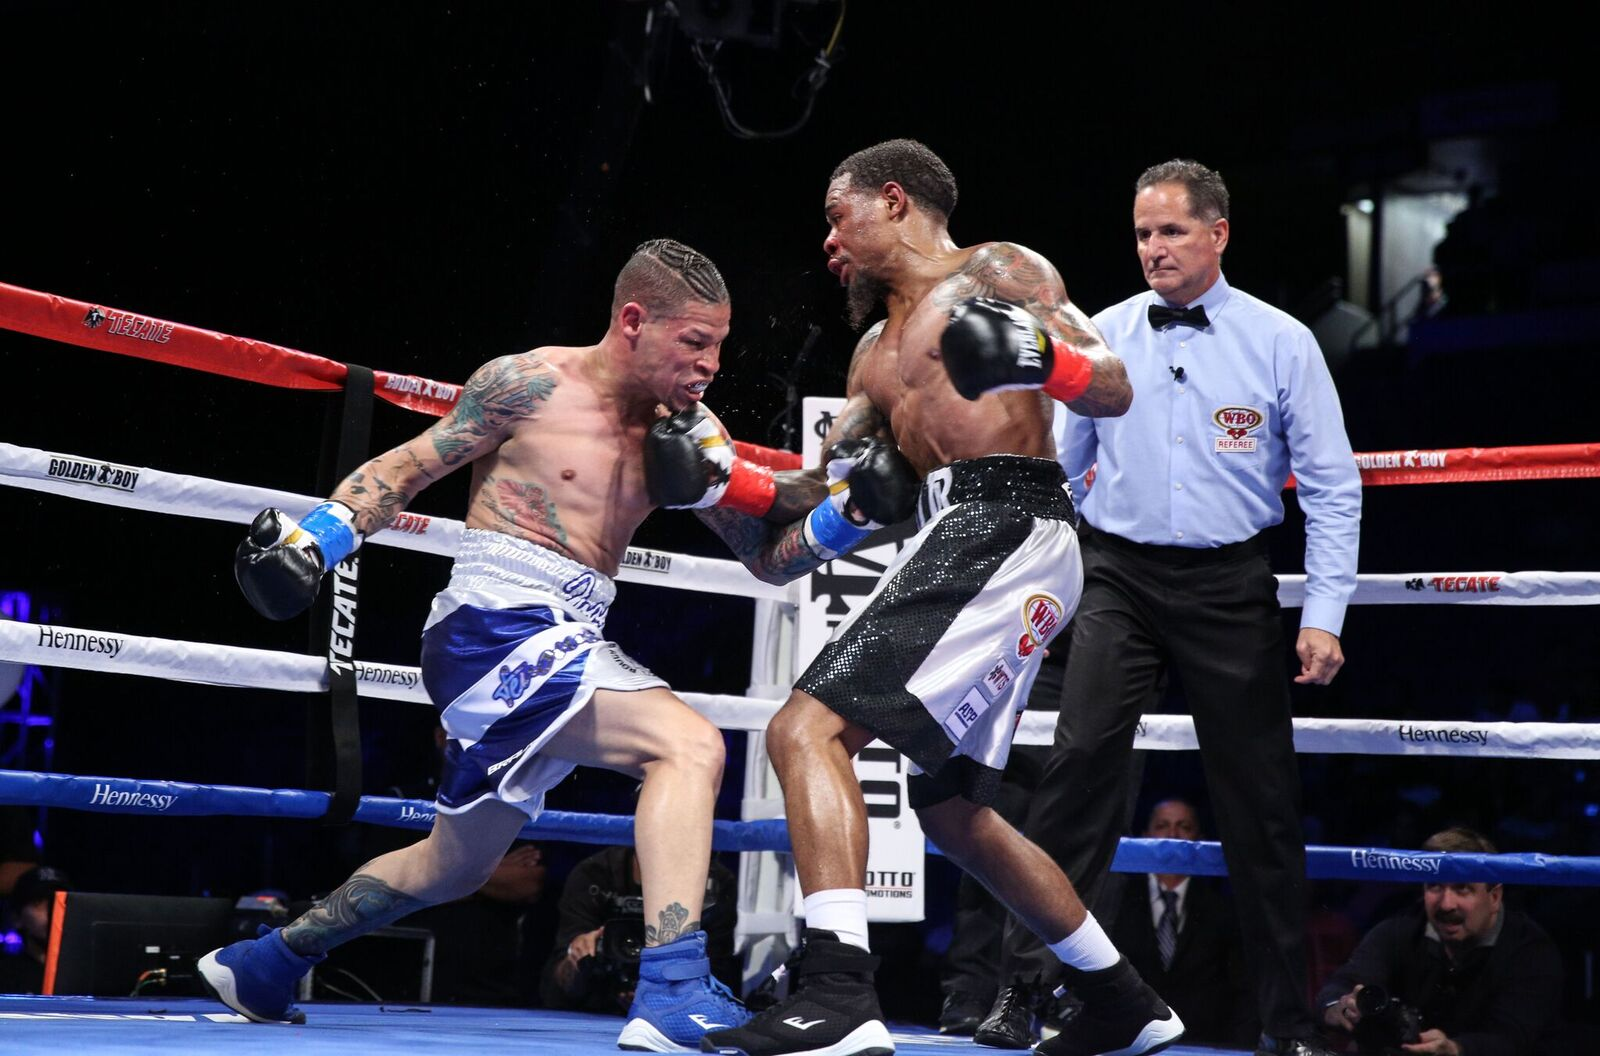 Junior lightweight Lamont Roach (right) vs. Orlando Cruz. Photo credit: Hector Santos Guia